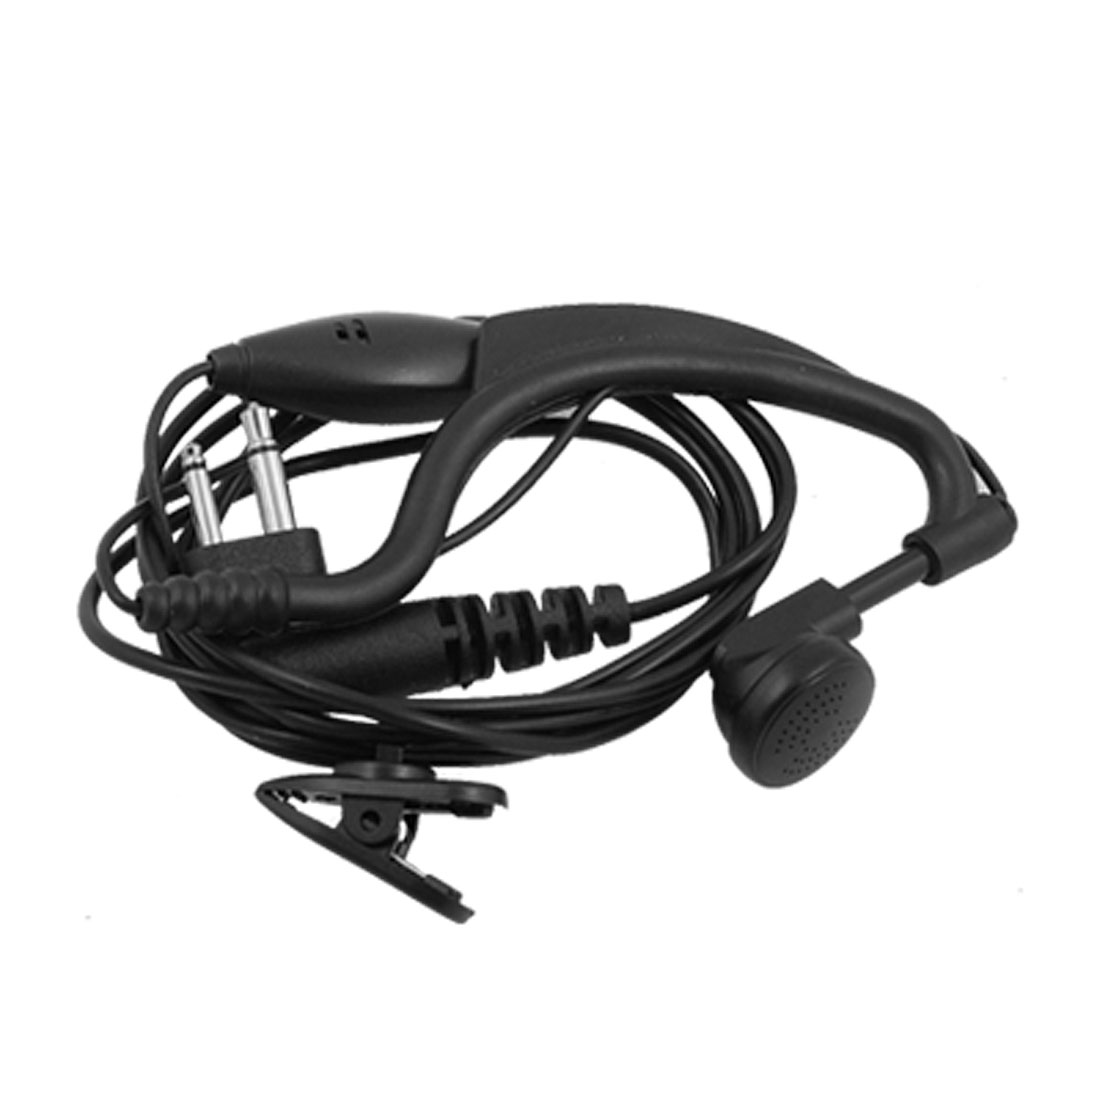 Earhook Microphone for Motorola MOTO GP88